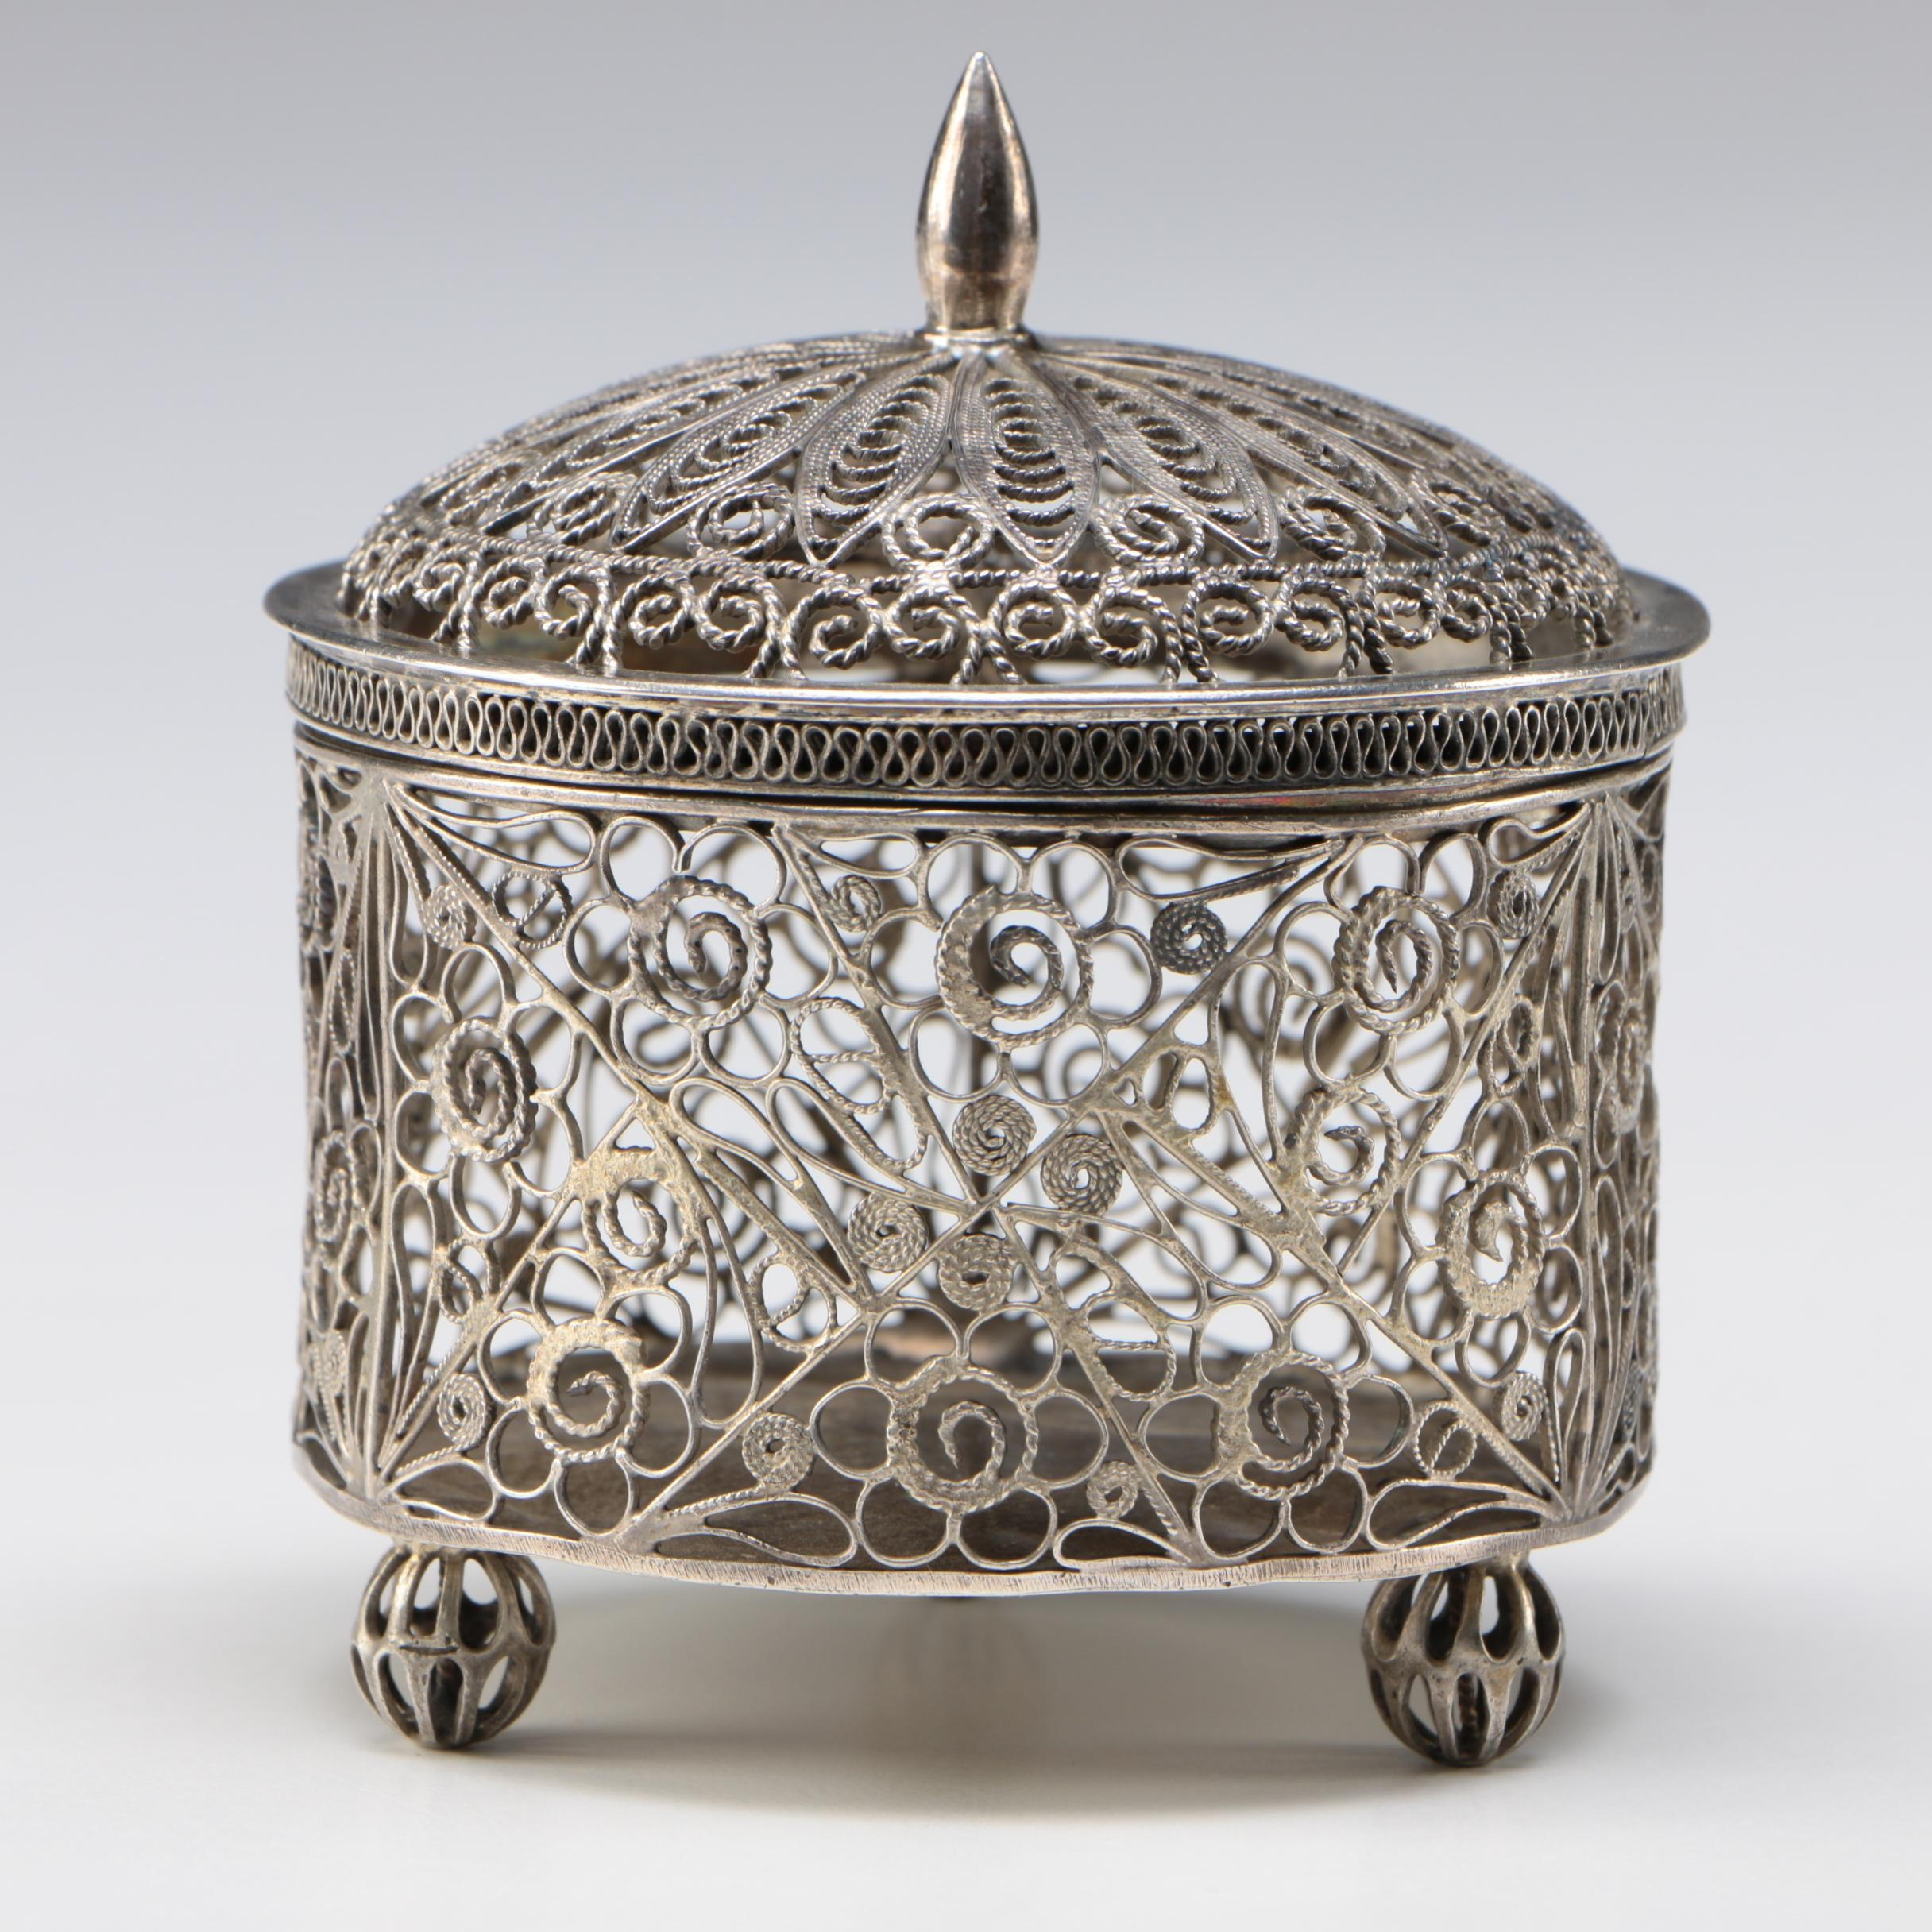 Chinese Sterling Silver Filigree Covered Box, Late Qing Dynasty